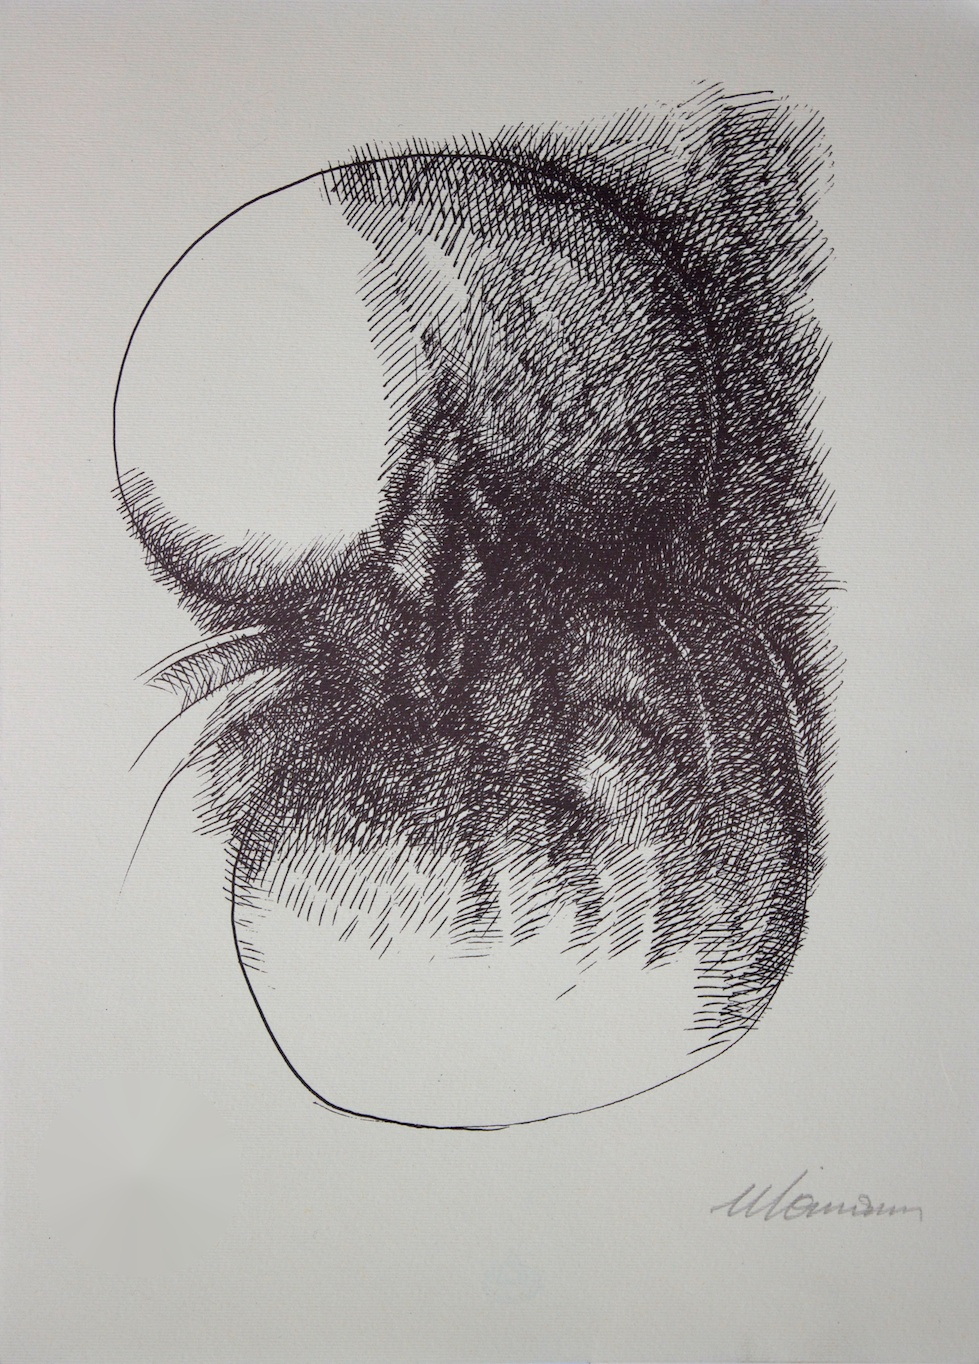 Cellule (Cells) - incisione su carta (engraving on paper) - 1971